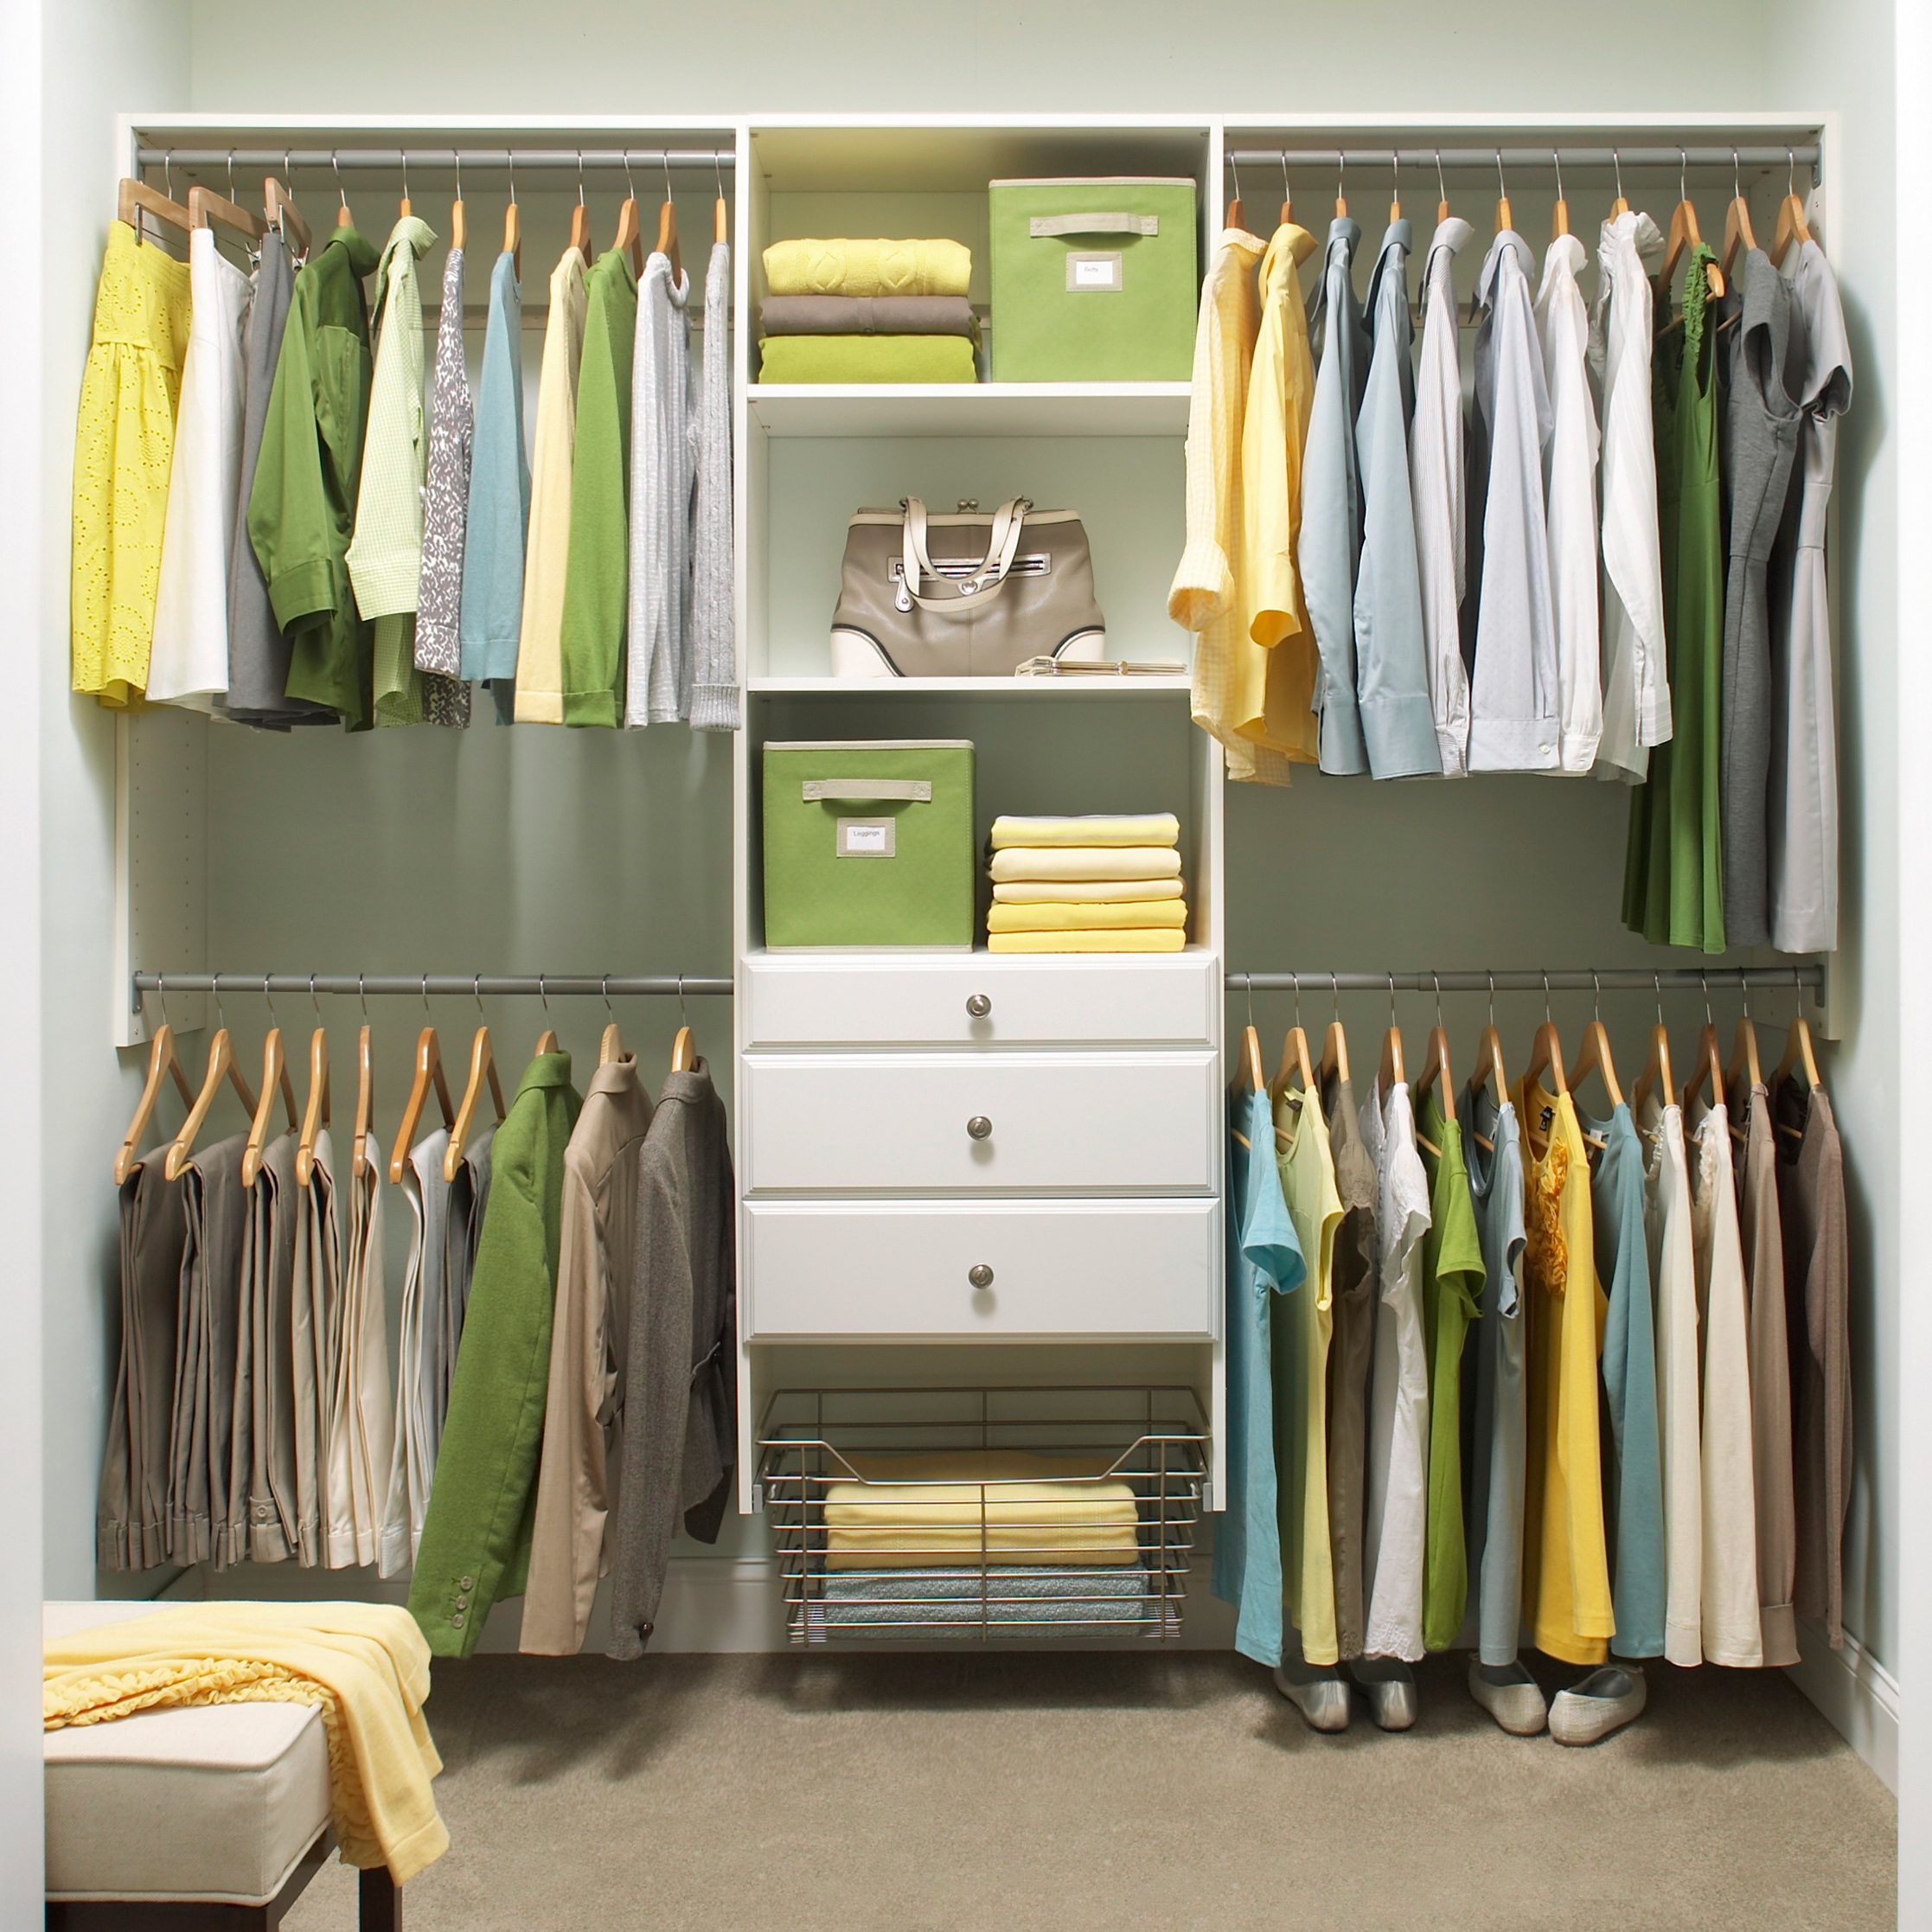 organizing feb tools in modern secret closets calgary more even womans reach installers looking installation for design custom closet